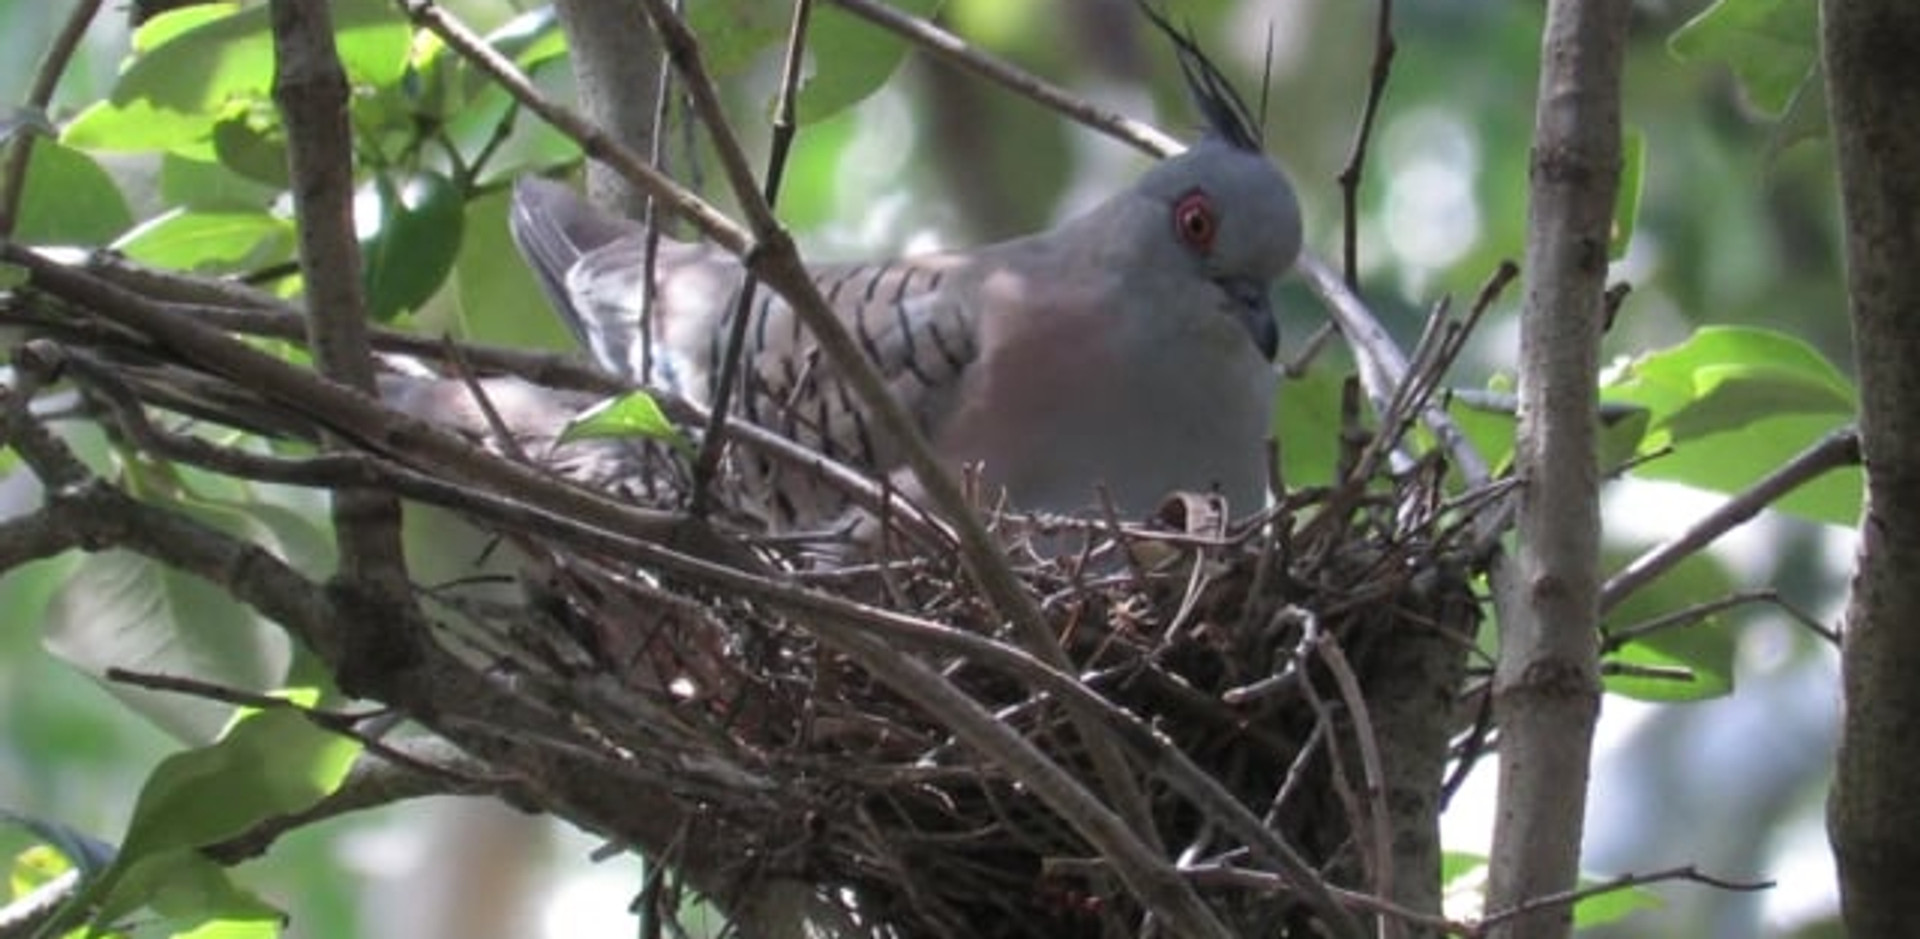 Adult Crested Pigeon on the nest